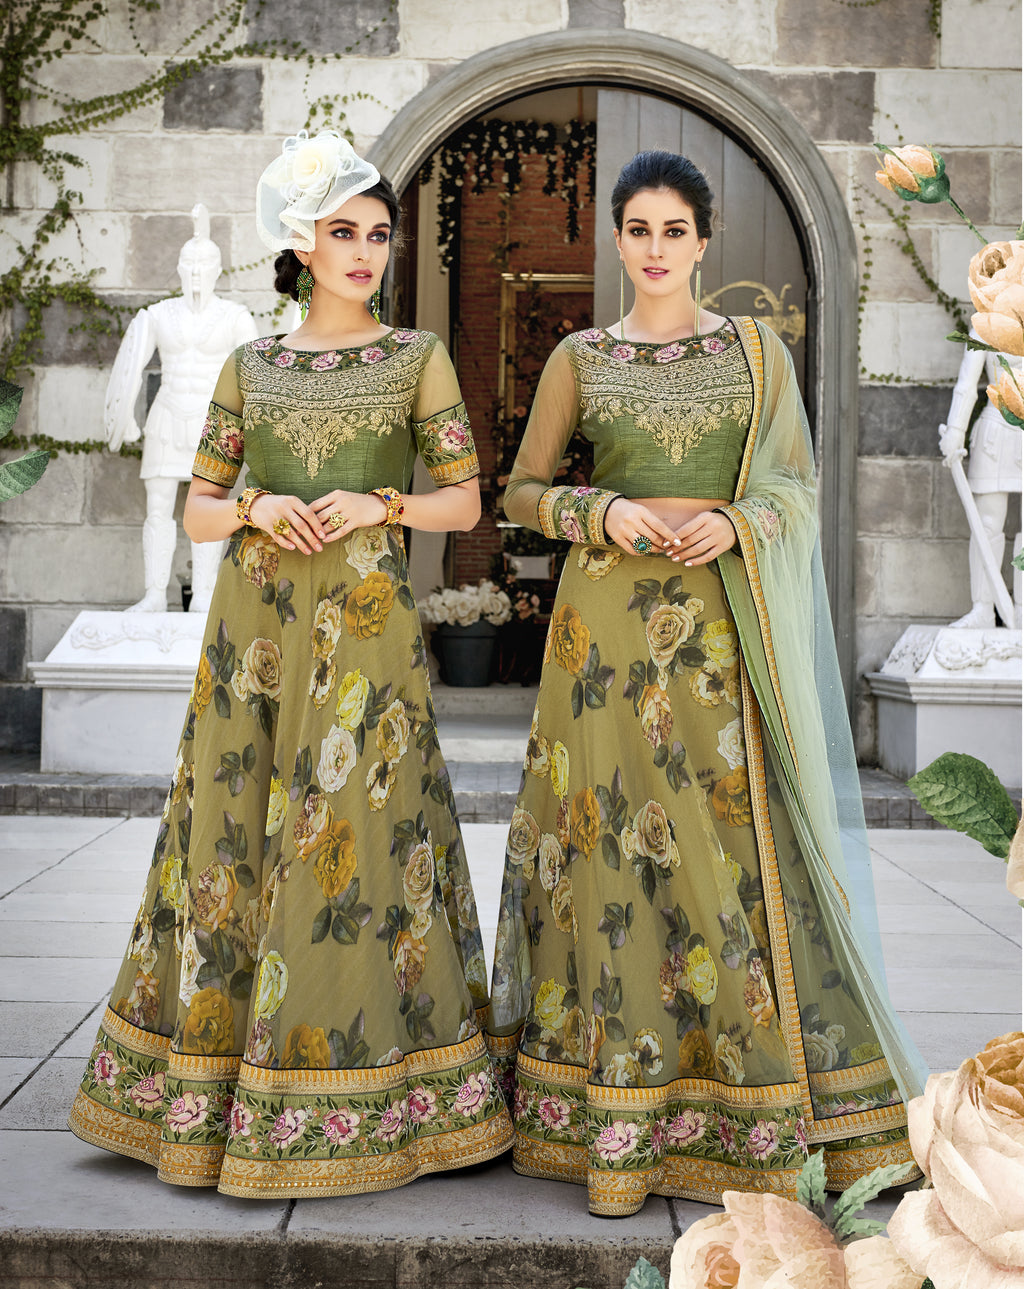 Olive Green Floral Print Organza Silk Latest Party Lehenga Choli Designs